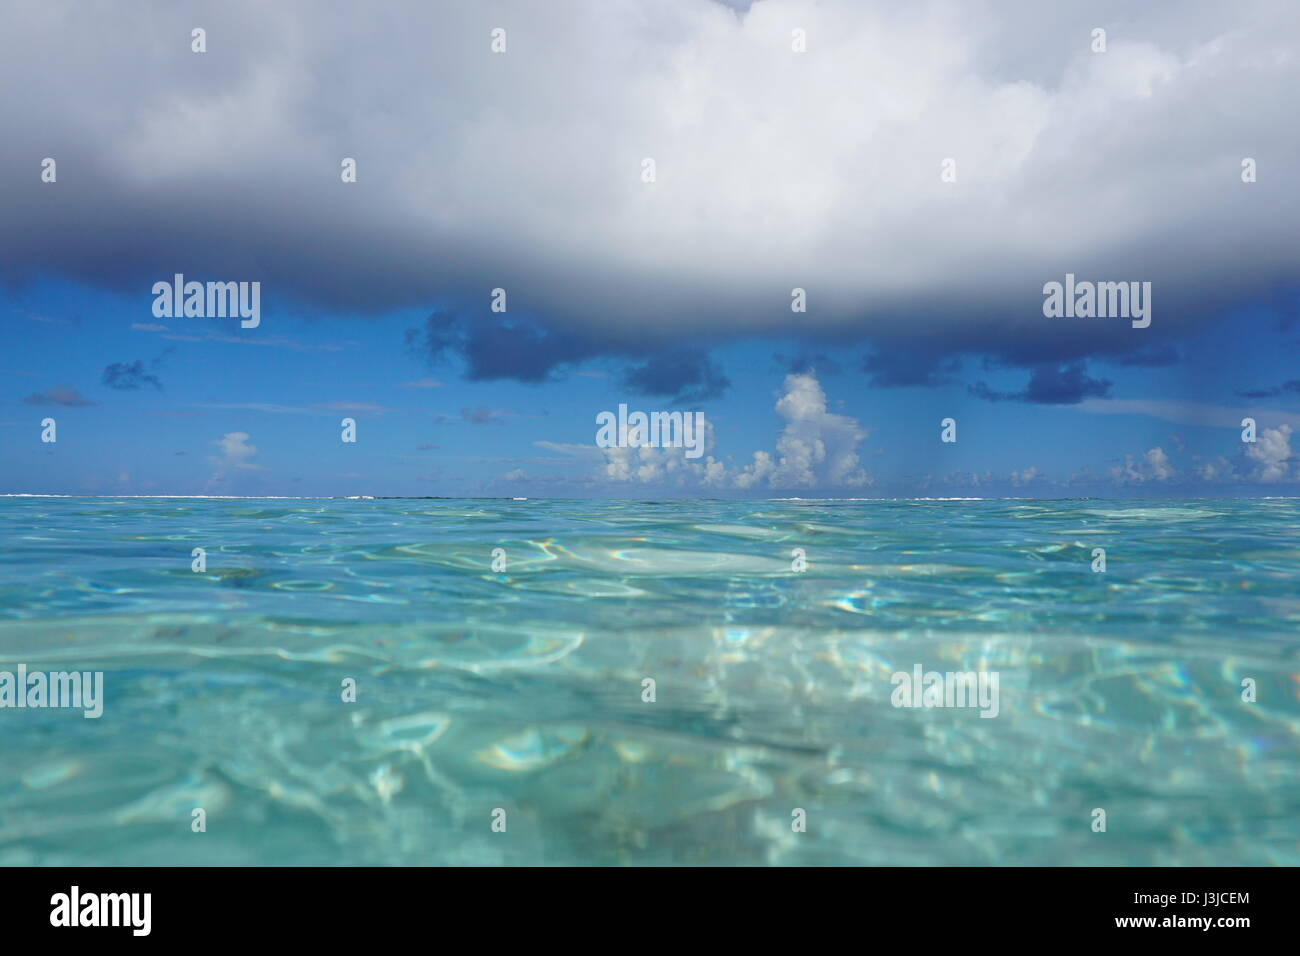 Seascape cloudy blue sky with turquoise water of the lagoon of Bora Bora, seen from sea surface, French Polynesia, - Stock Image